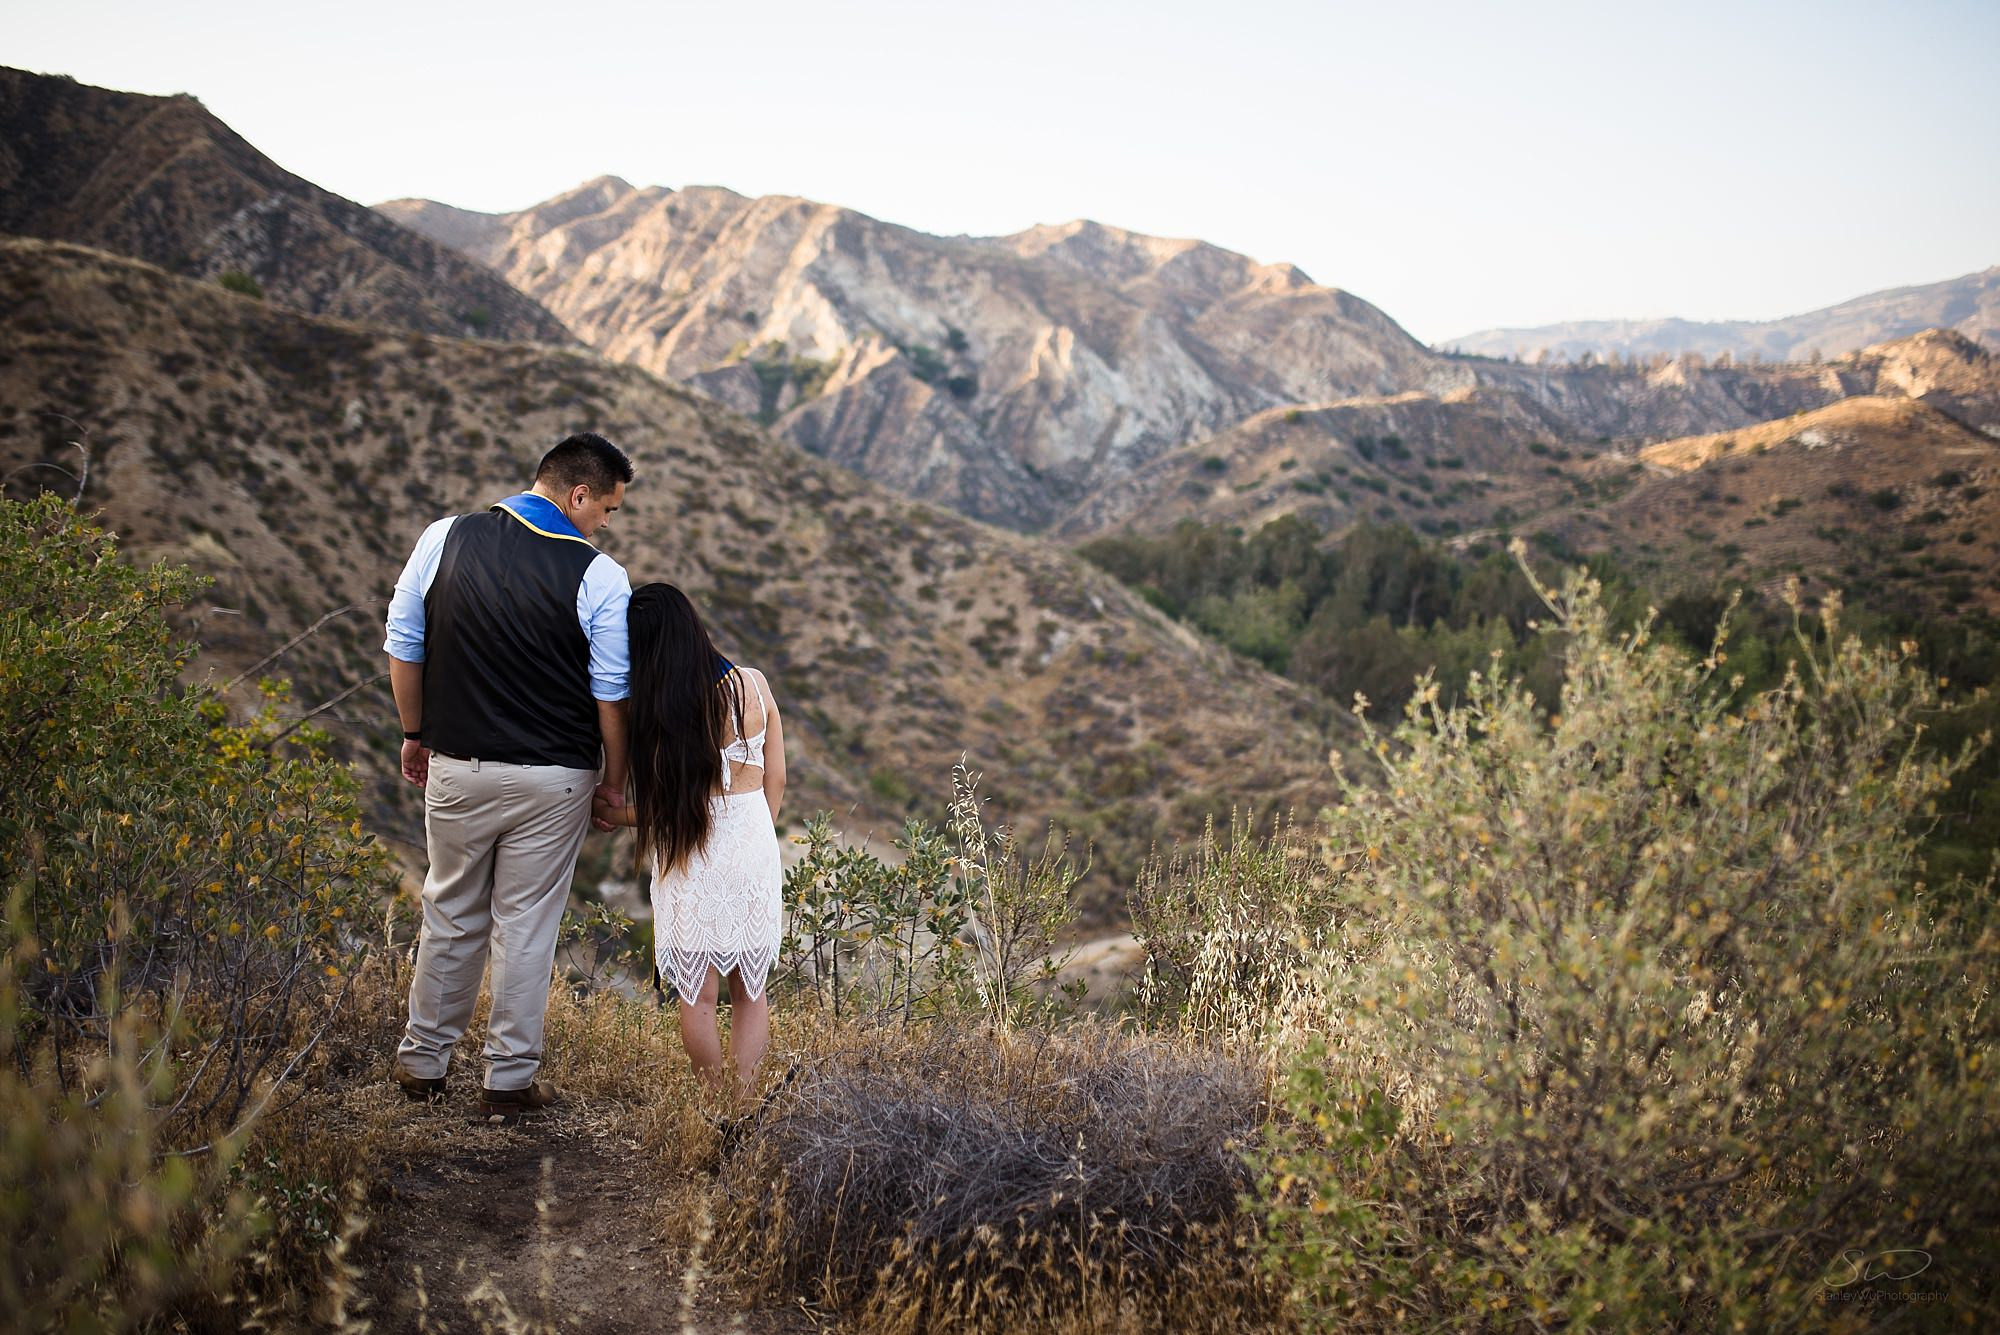 epic graduation senior portrait of a couple standing on a cliff before mountains in the background at san fernando valley in los angeles